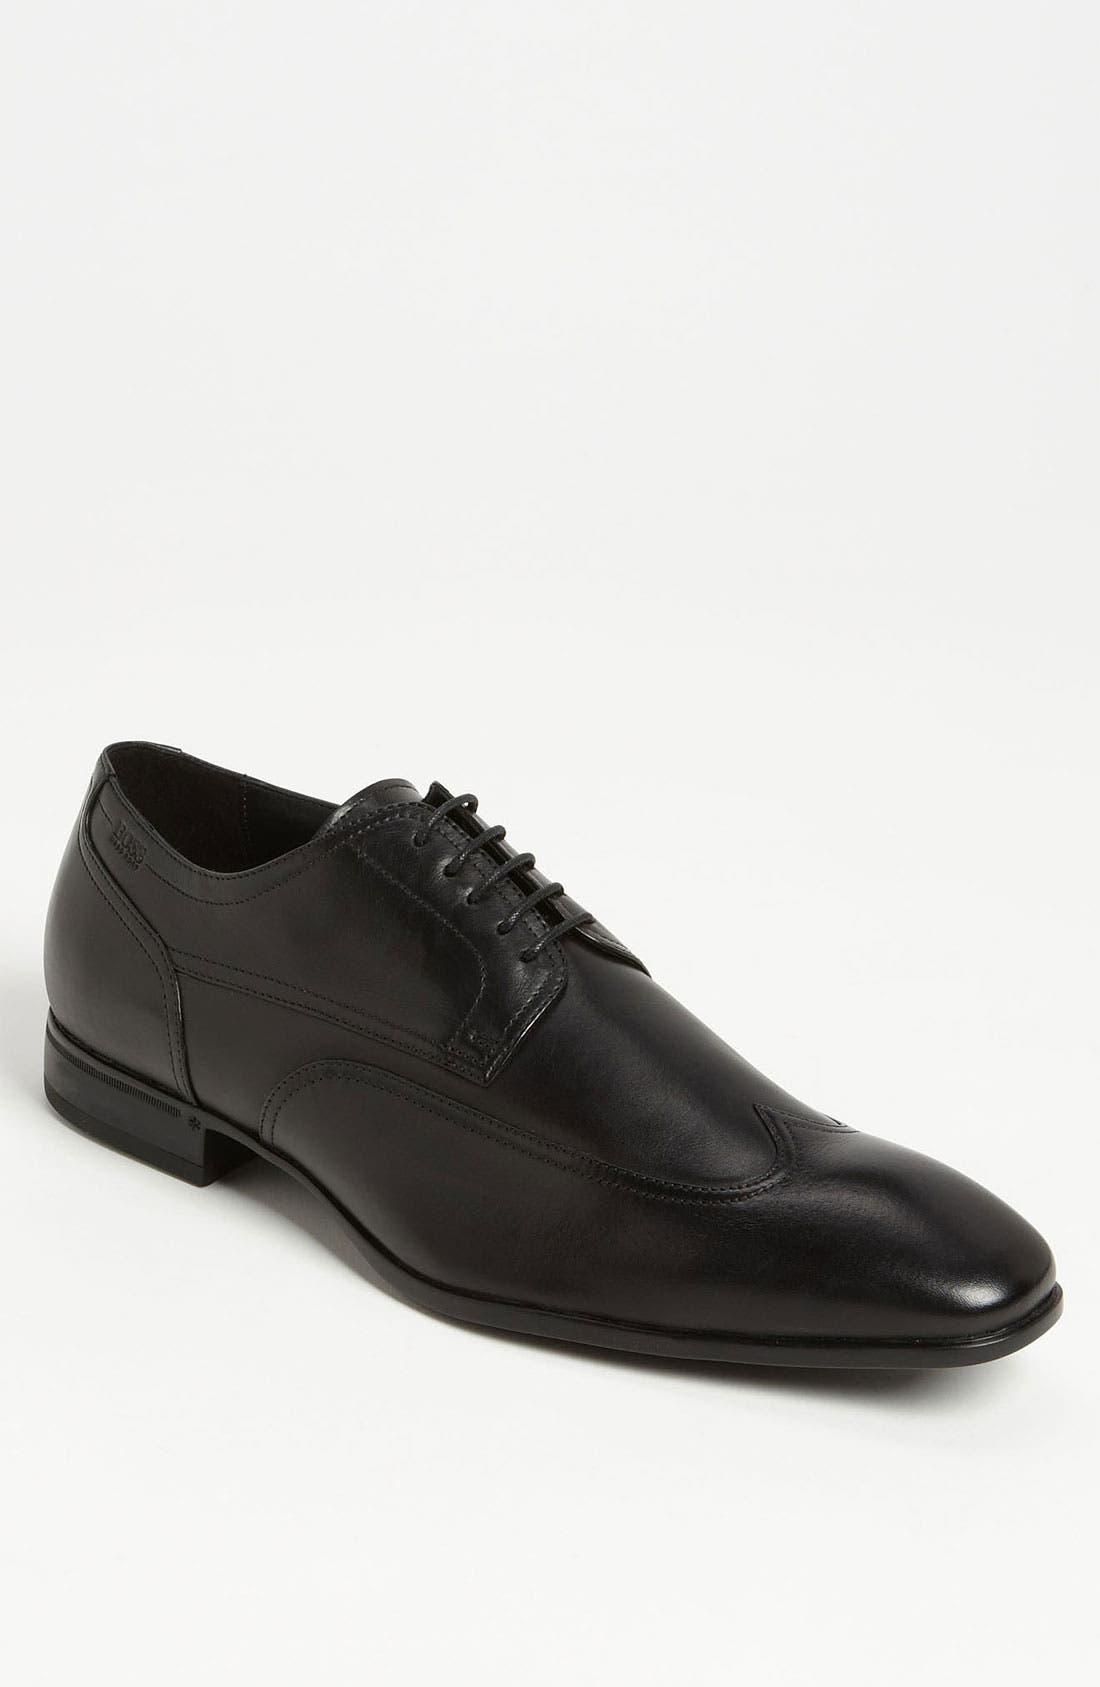 Alternate Image 1 Selected - BOSS HUGO BOSS 'Vernus' Wingtip Oxford